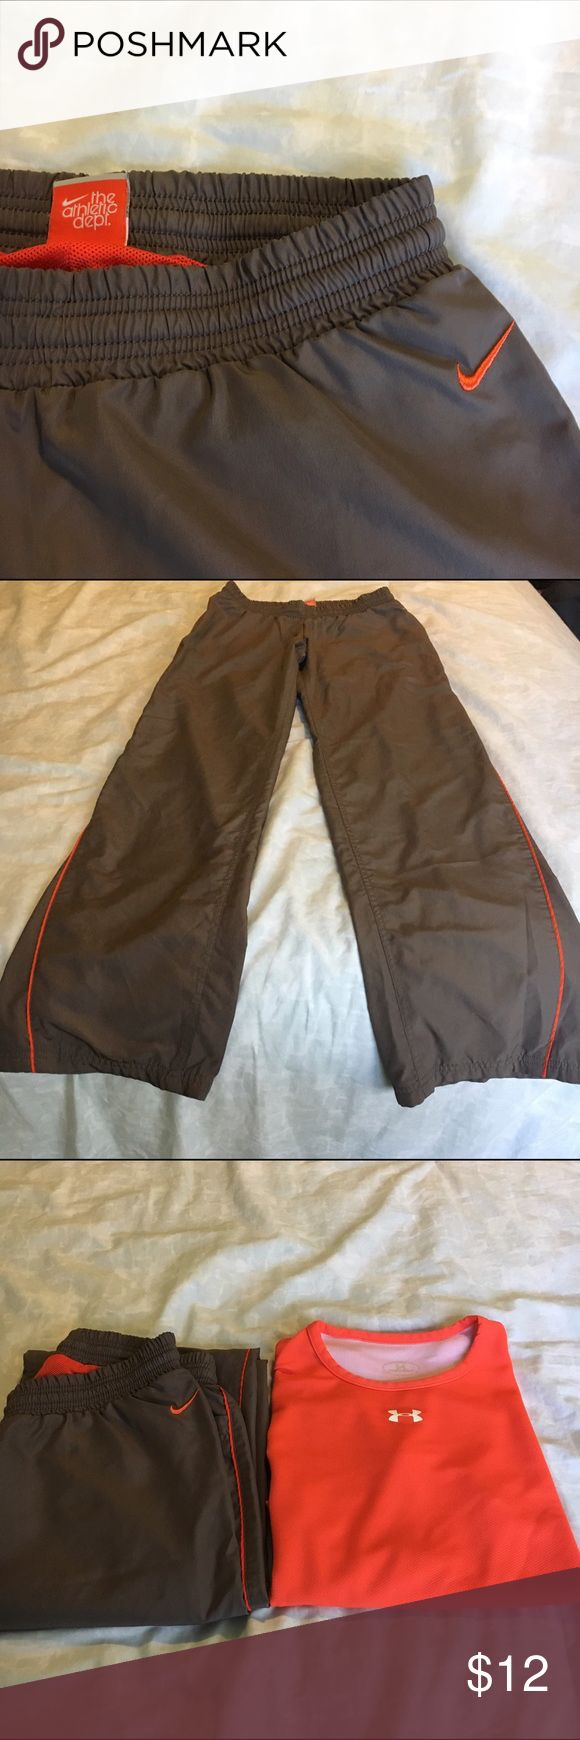 Nike Jogging Pants Nike Jogging Pants. Worn Once. Size XS. Coral accents Nike Pants Track Pants & Joggers